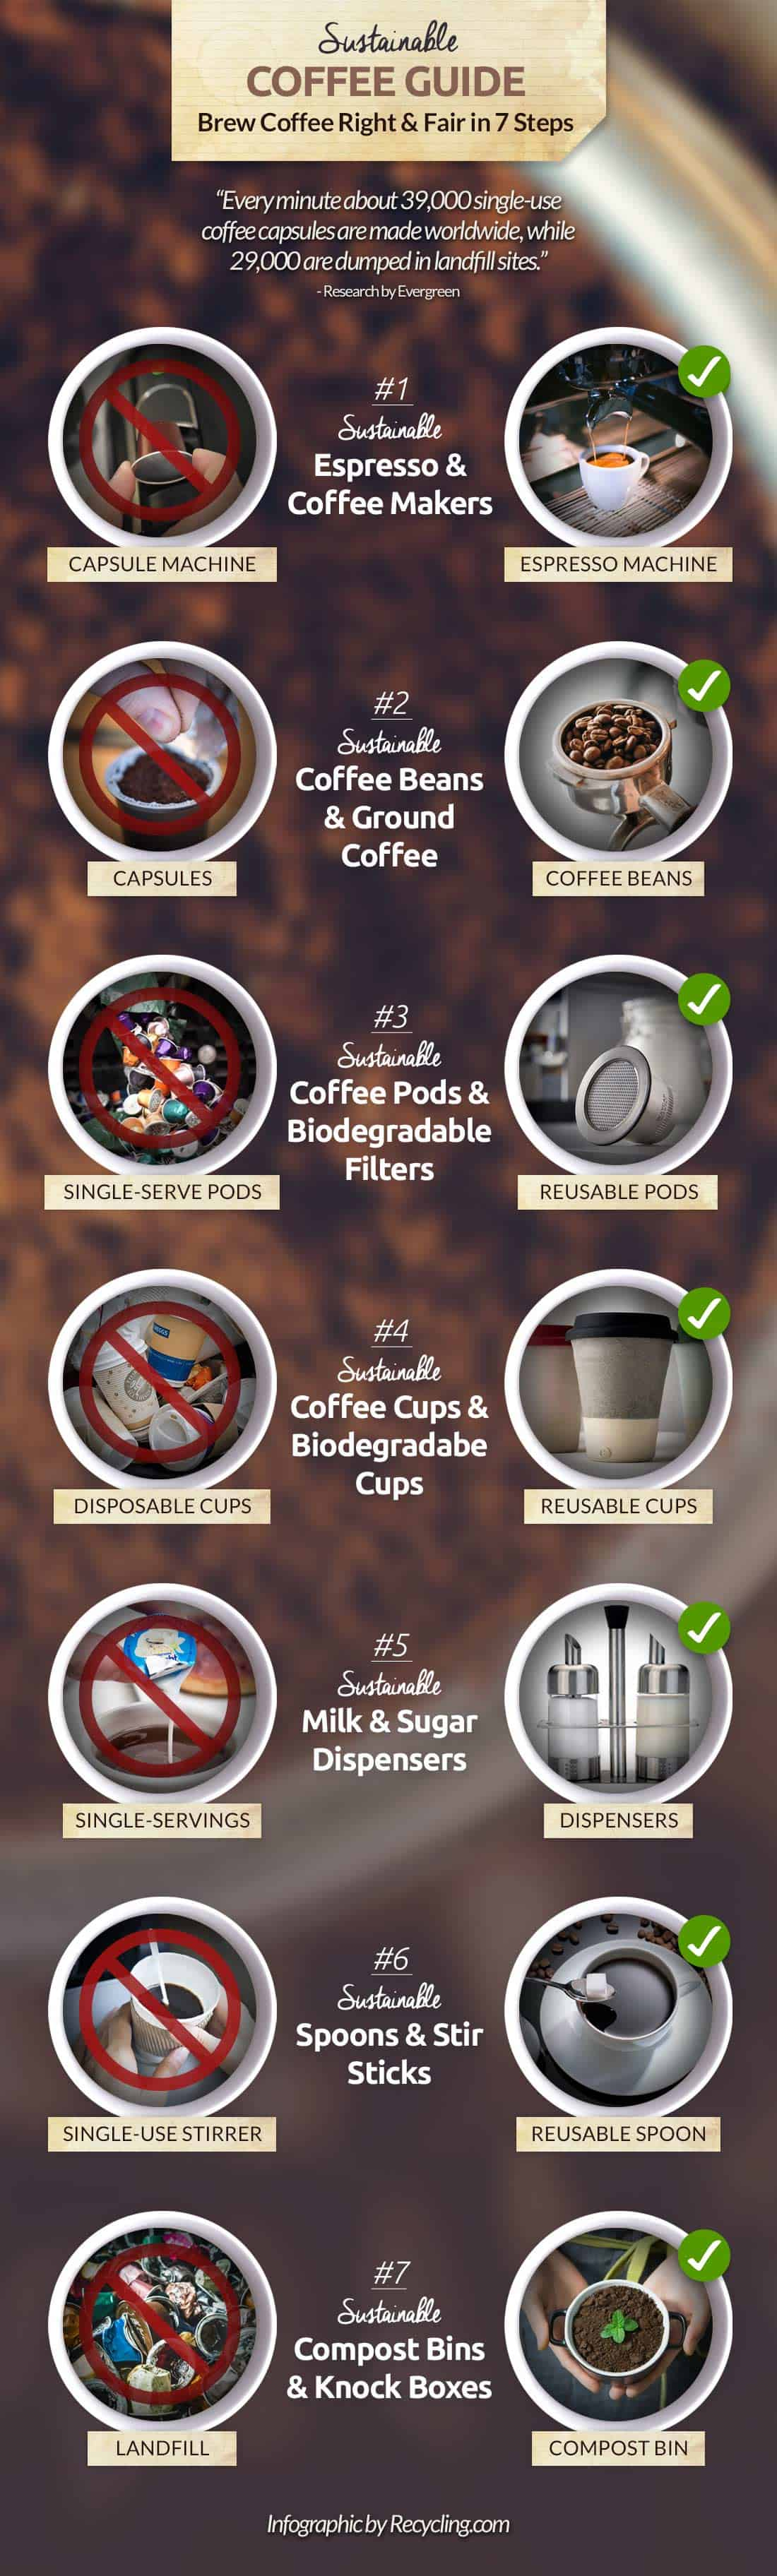 Sustainable-Coffee-Guide-Infograpic